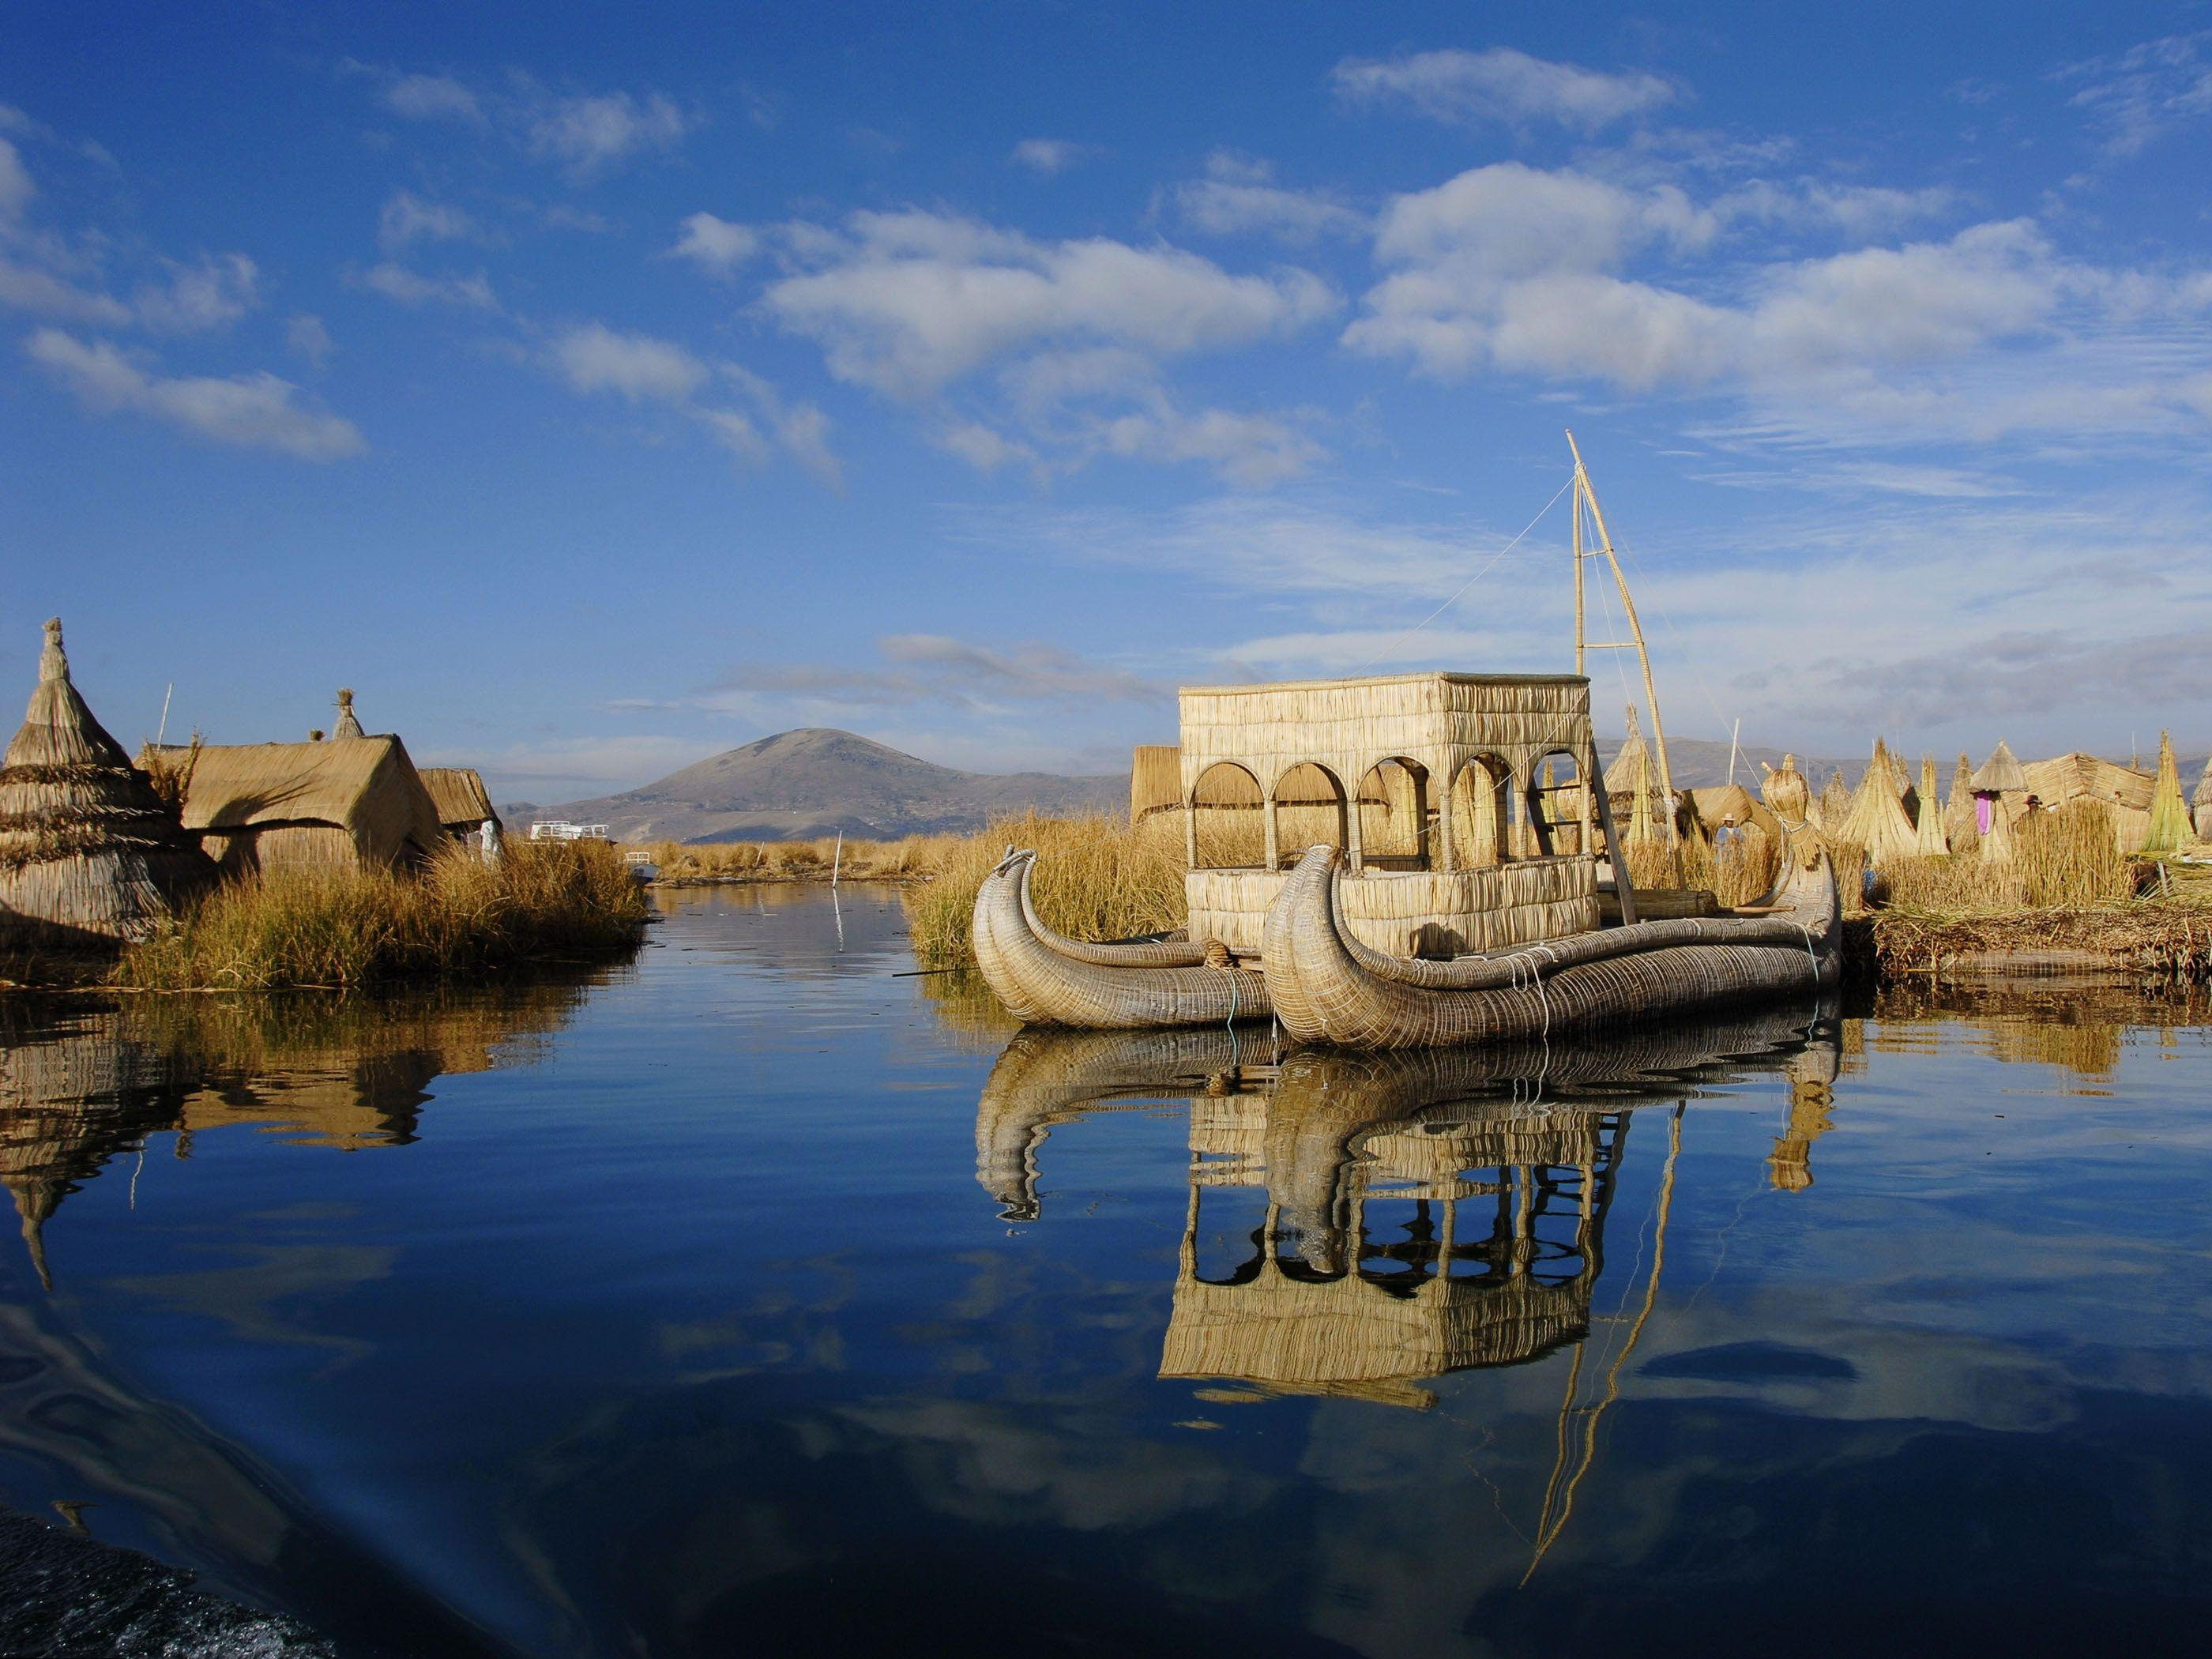 Floating Uros Islands, Lake Titicaca Puno, Peru | HQ Wallpapers for ...